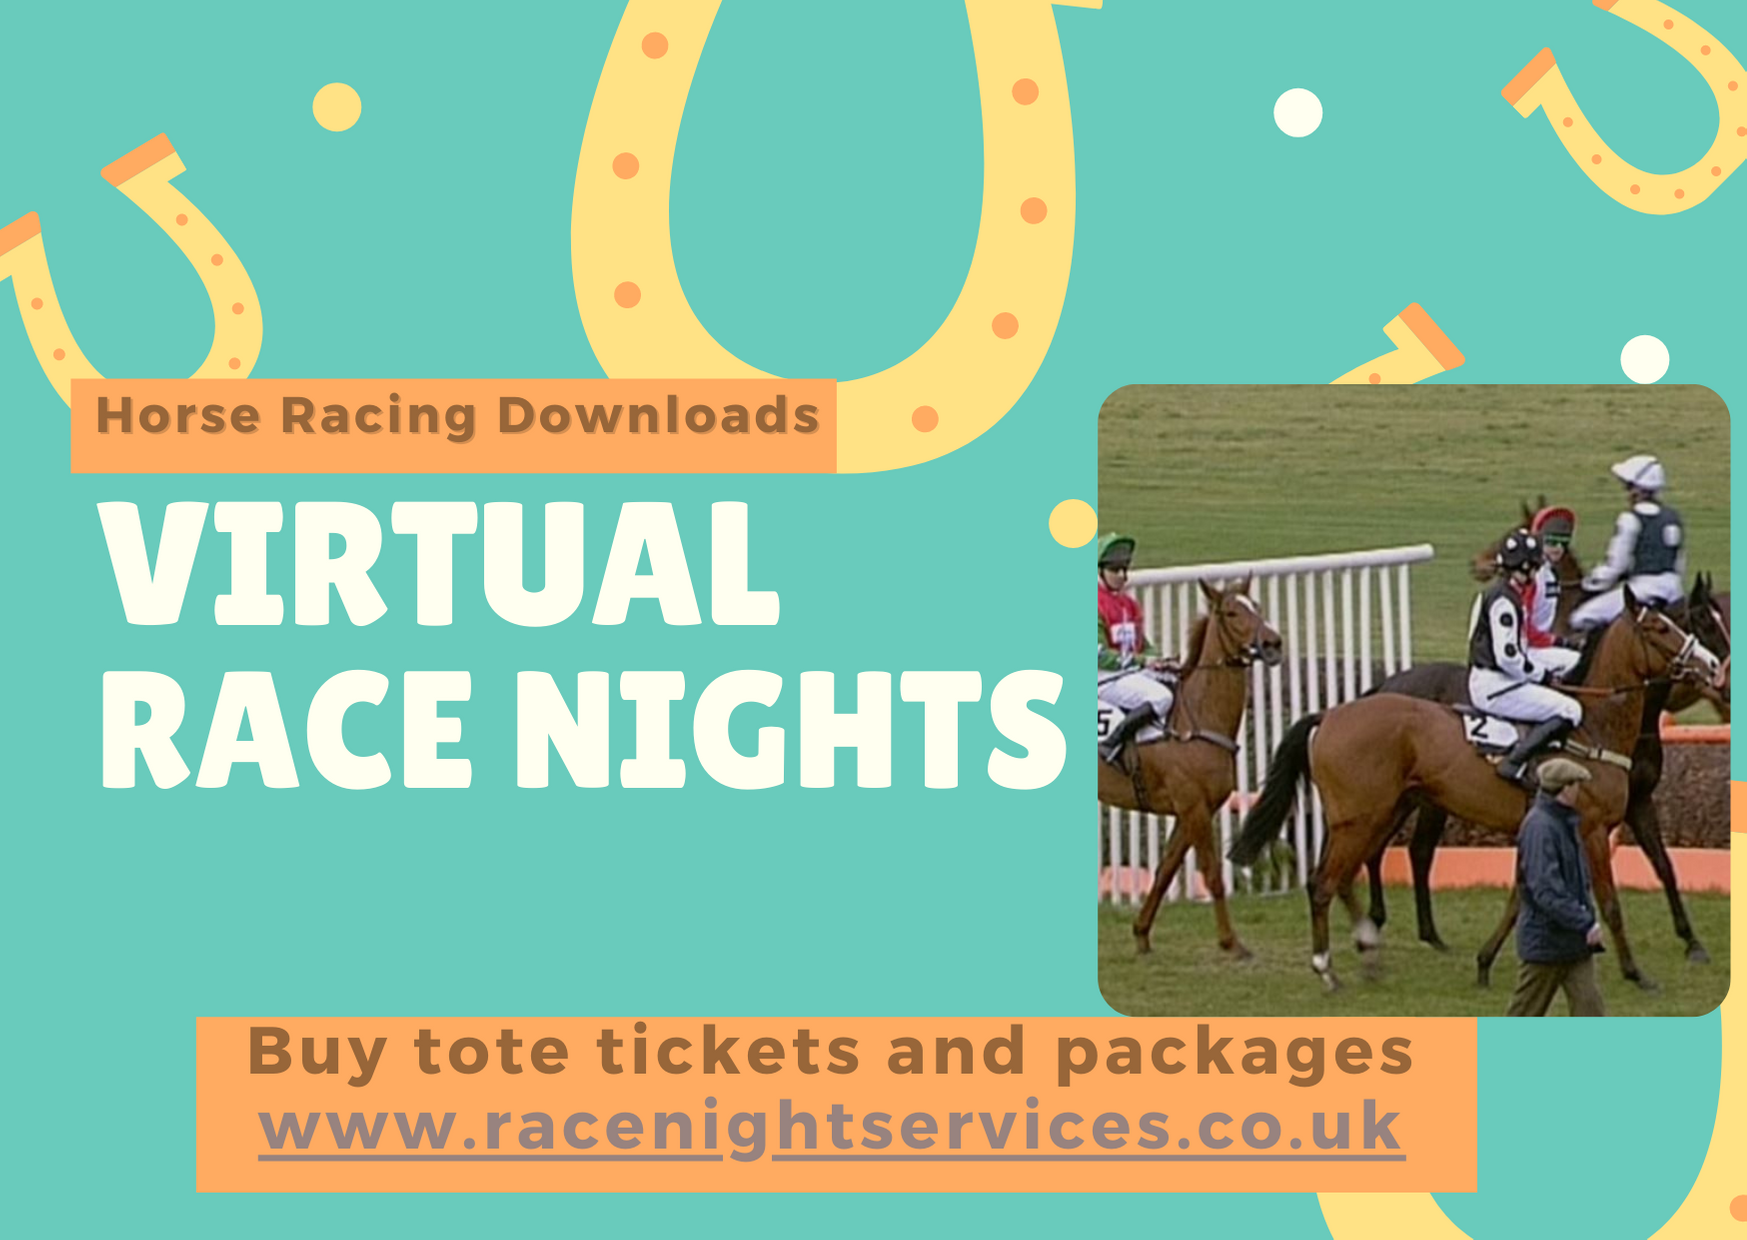 Virtual Race Night Zoom Fundraising Charity Sporting Clubs Sports Teams Horse Racing Downloads UK 2021